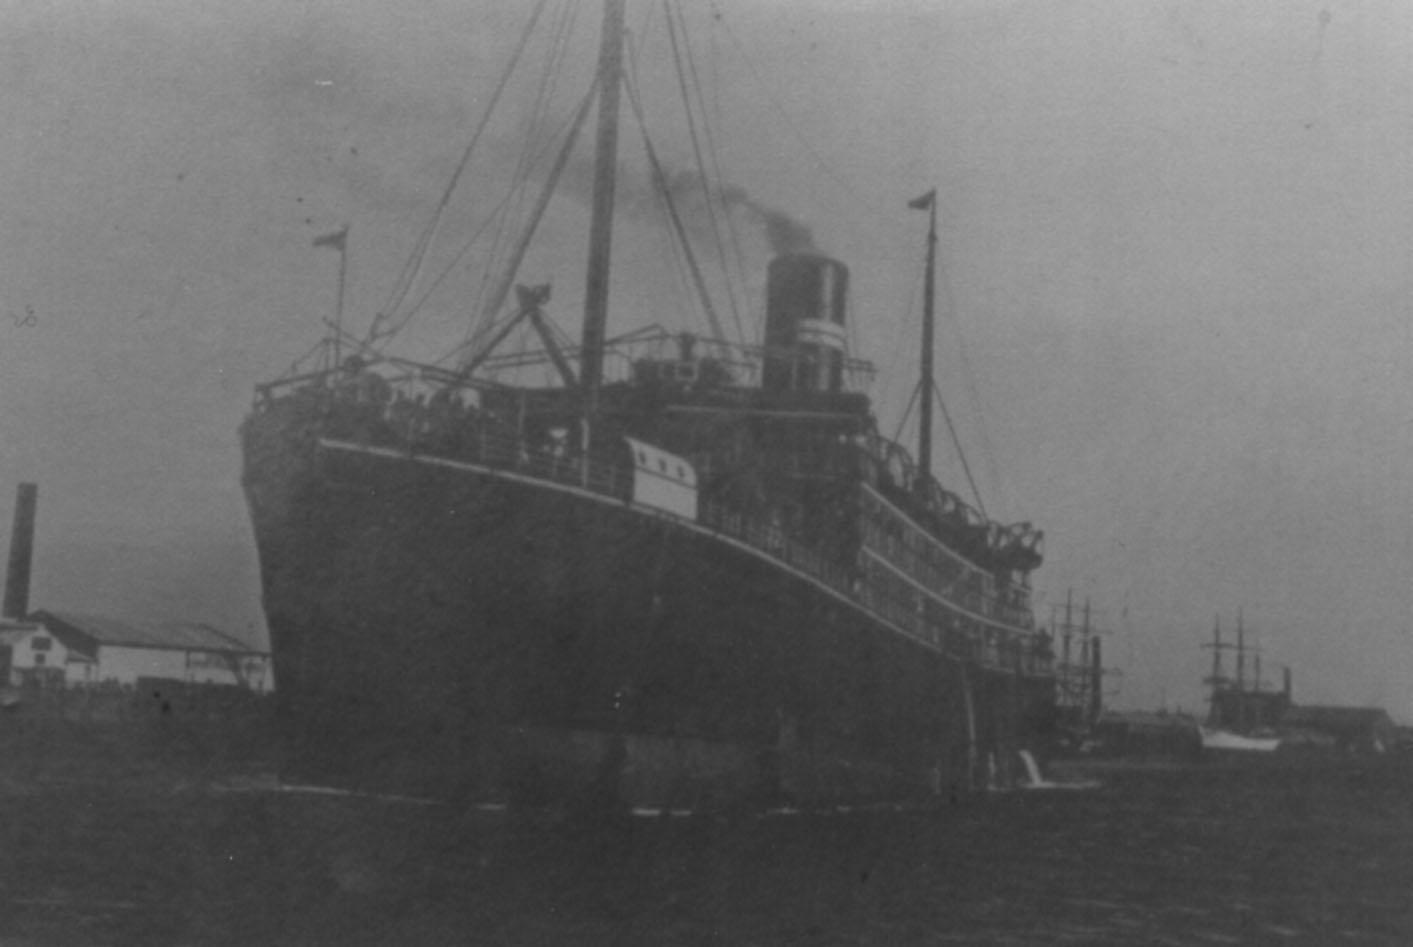 This image of vessel taken at Port Adelaide. Refer  - Passenger Ships of Australia and New Zealand by Peter Plowman  Volume 1 1876-1912.